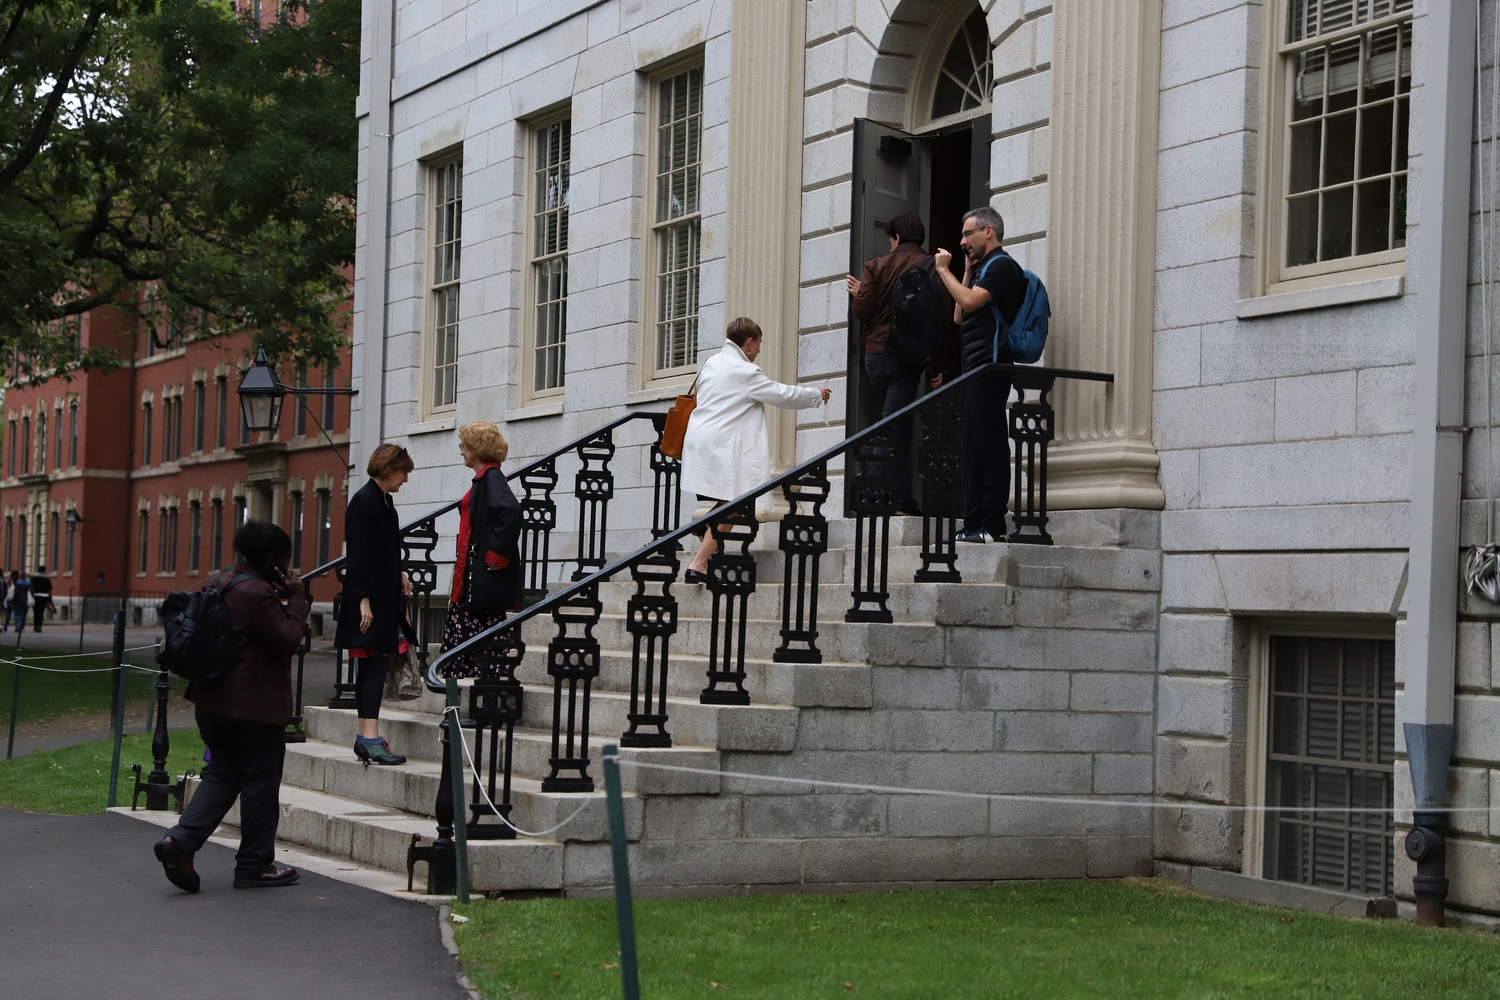 Professors and administrators walk into University Hall ahead of a monthly faculty meeting.